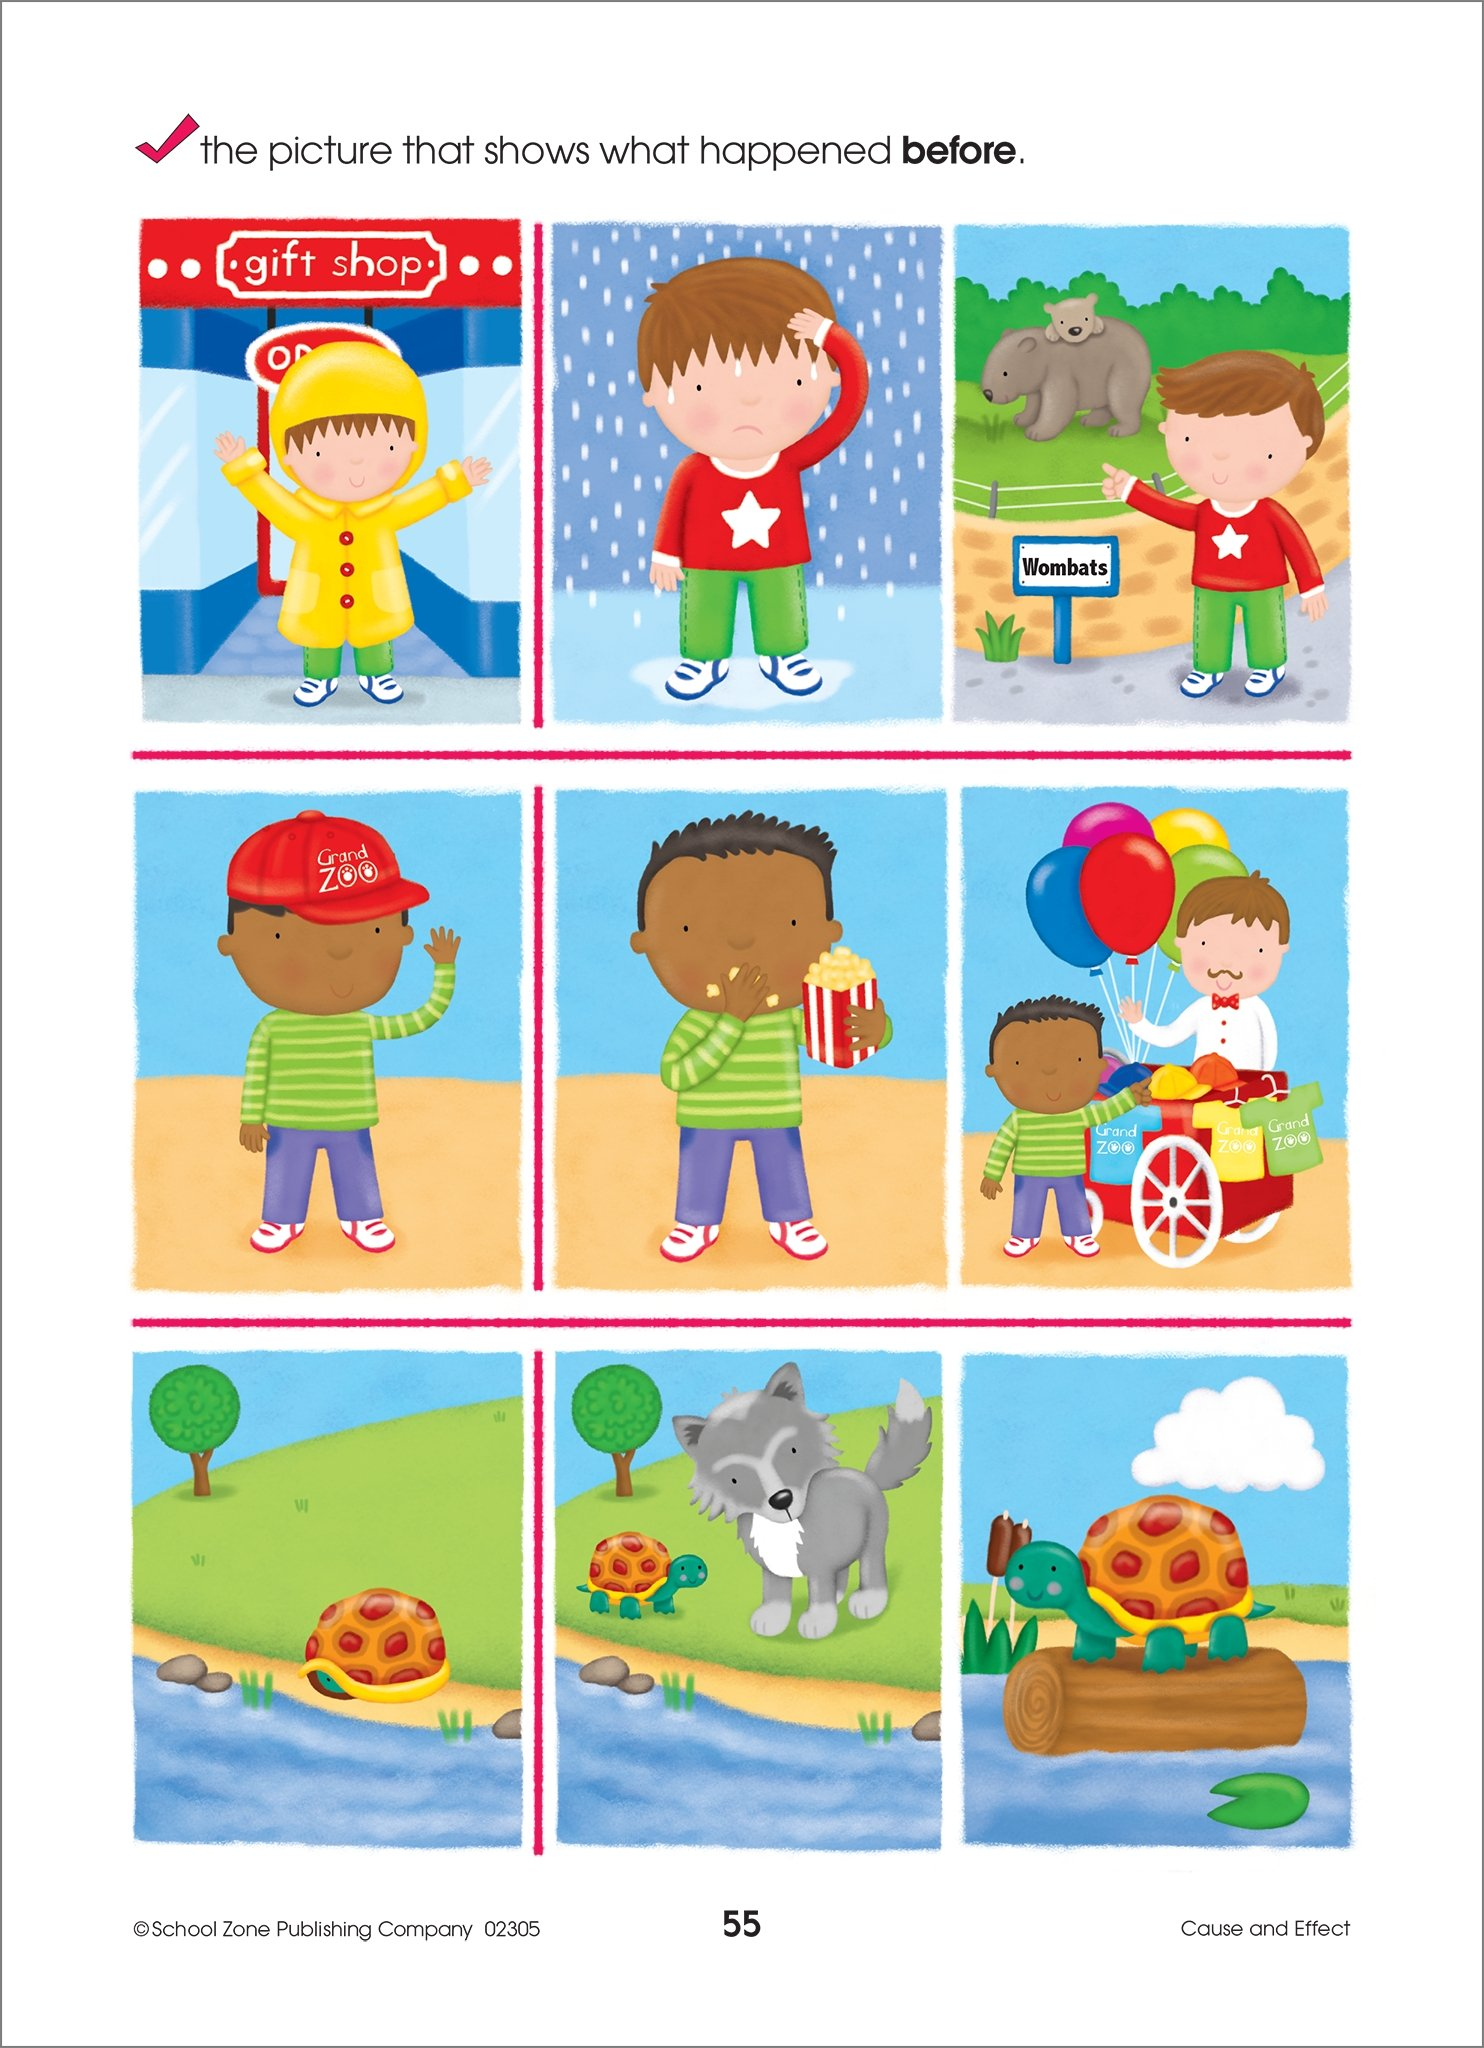 School Zone - Preschool Scholar Deluxe Edition Workbook, Ages 3 to 5, Shapes, ABCs, Early Math, and More